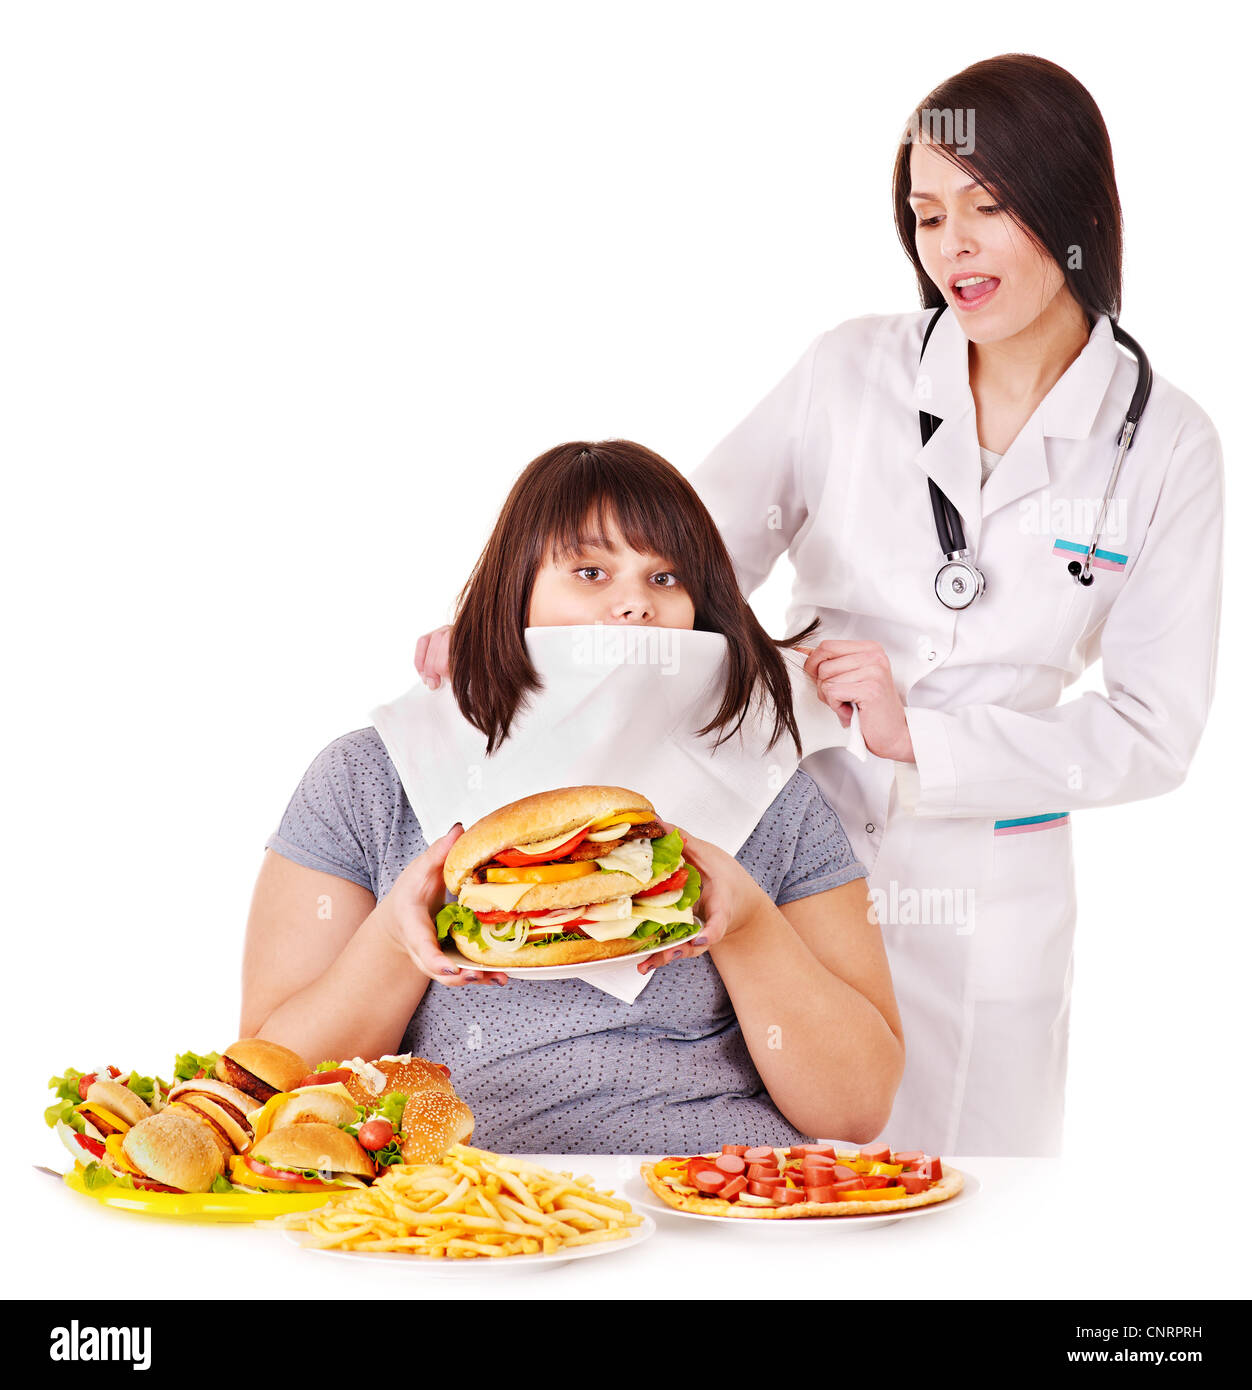 Overweight woman with hamburger and doctor. - Stock Image